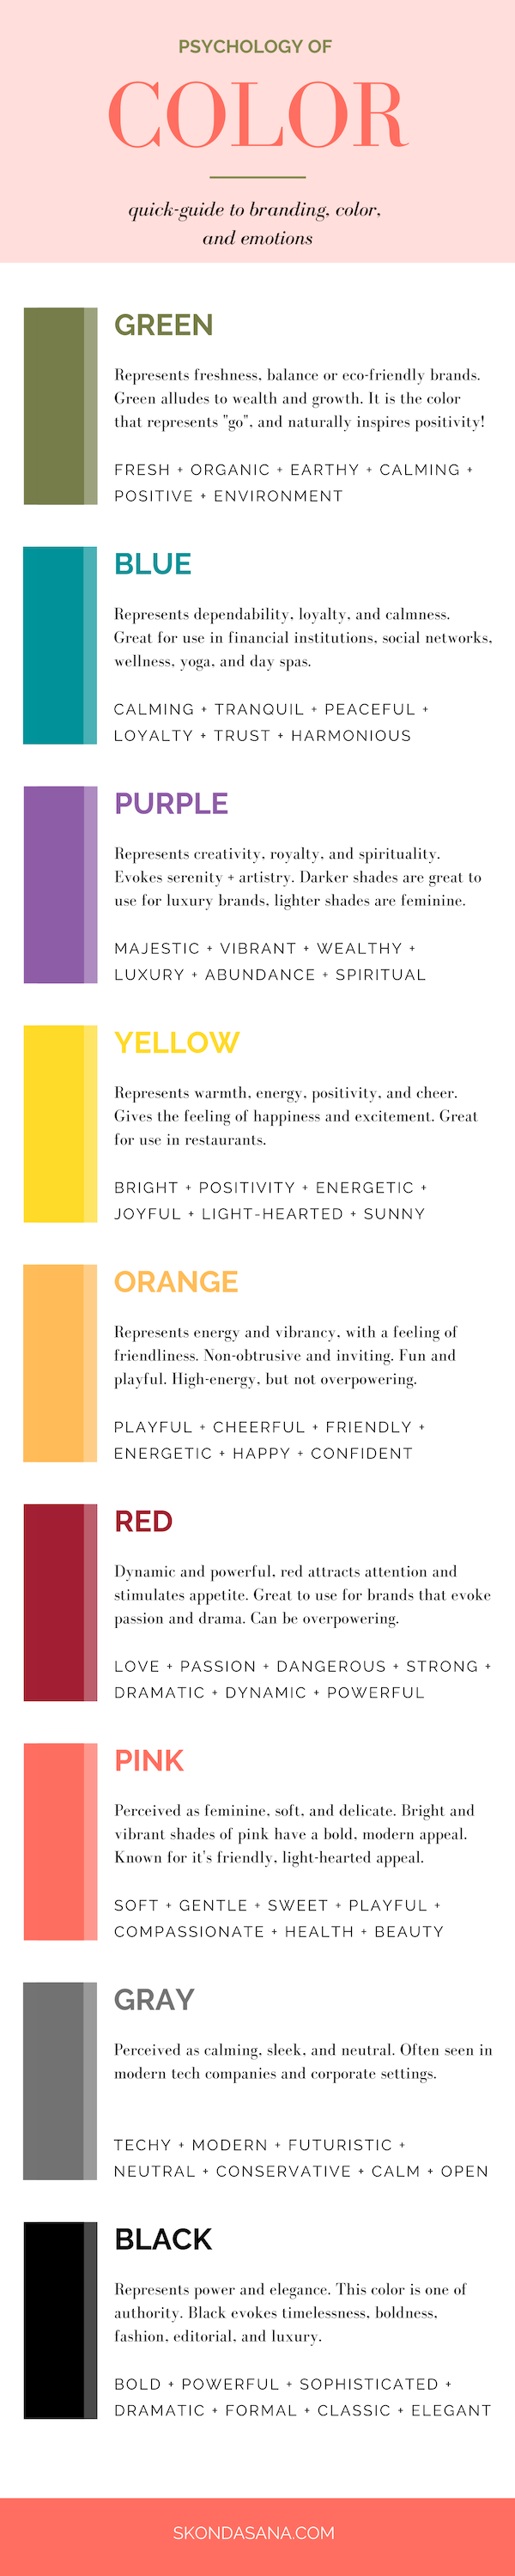 Skondasana_ The Psychology of Color (2).png